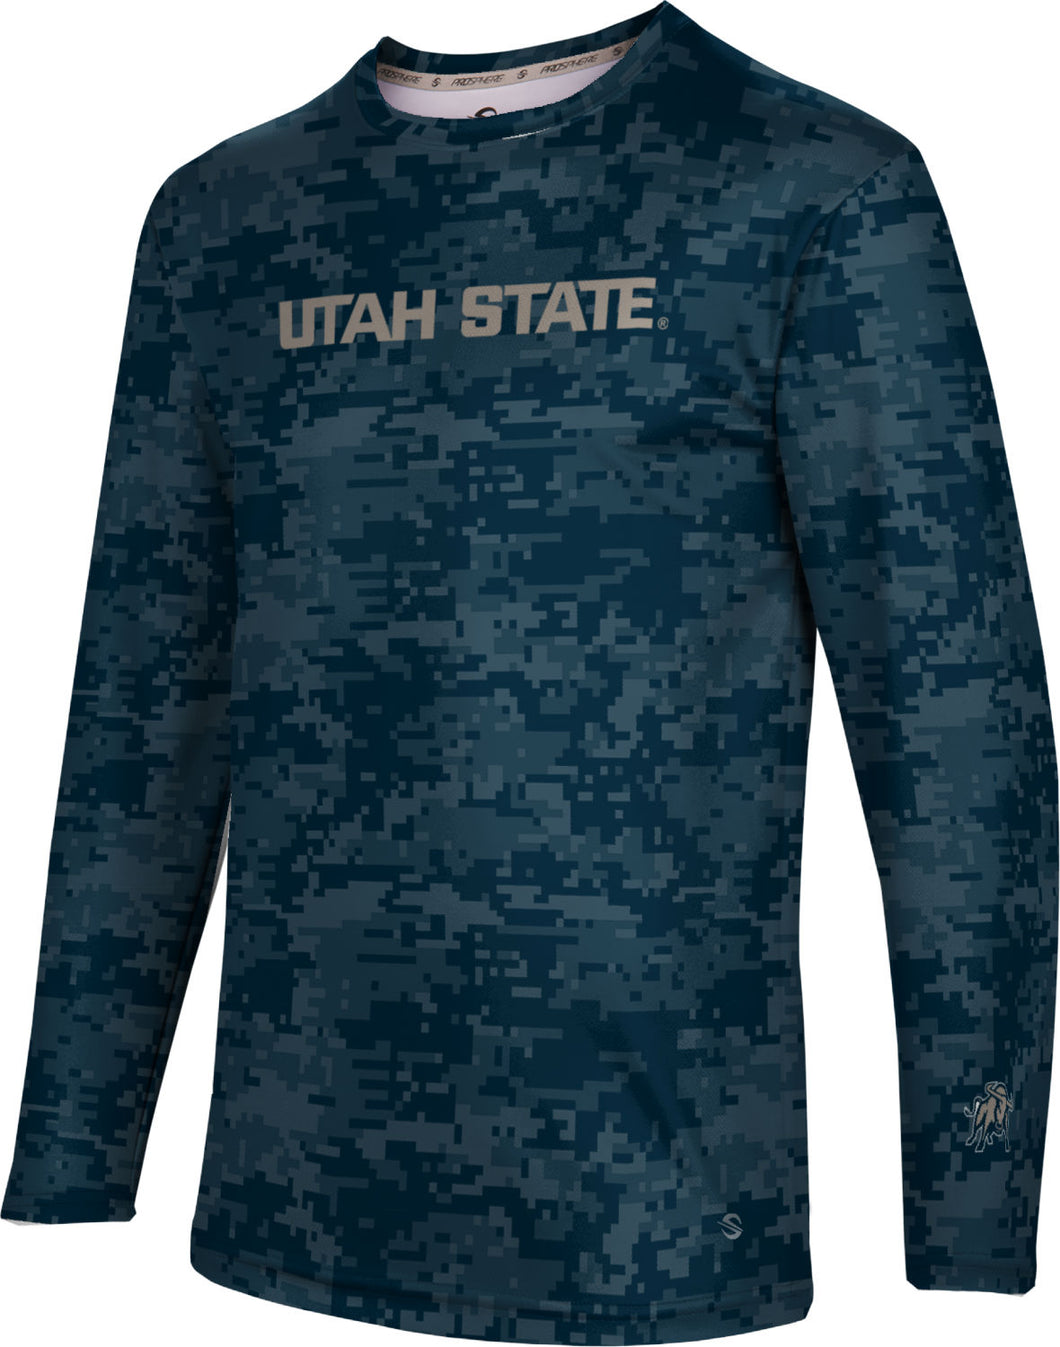 Utah State University: Men's Long Sleeve Tee - Digital